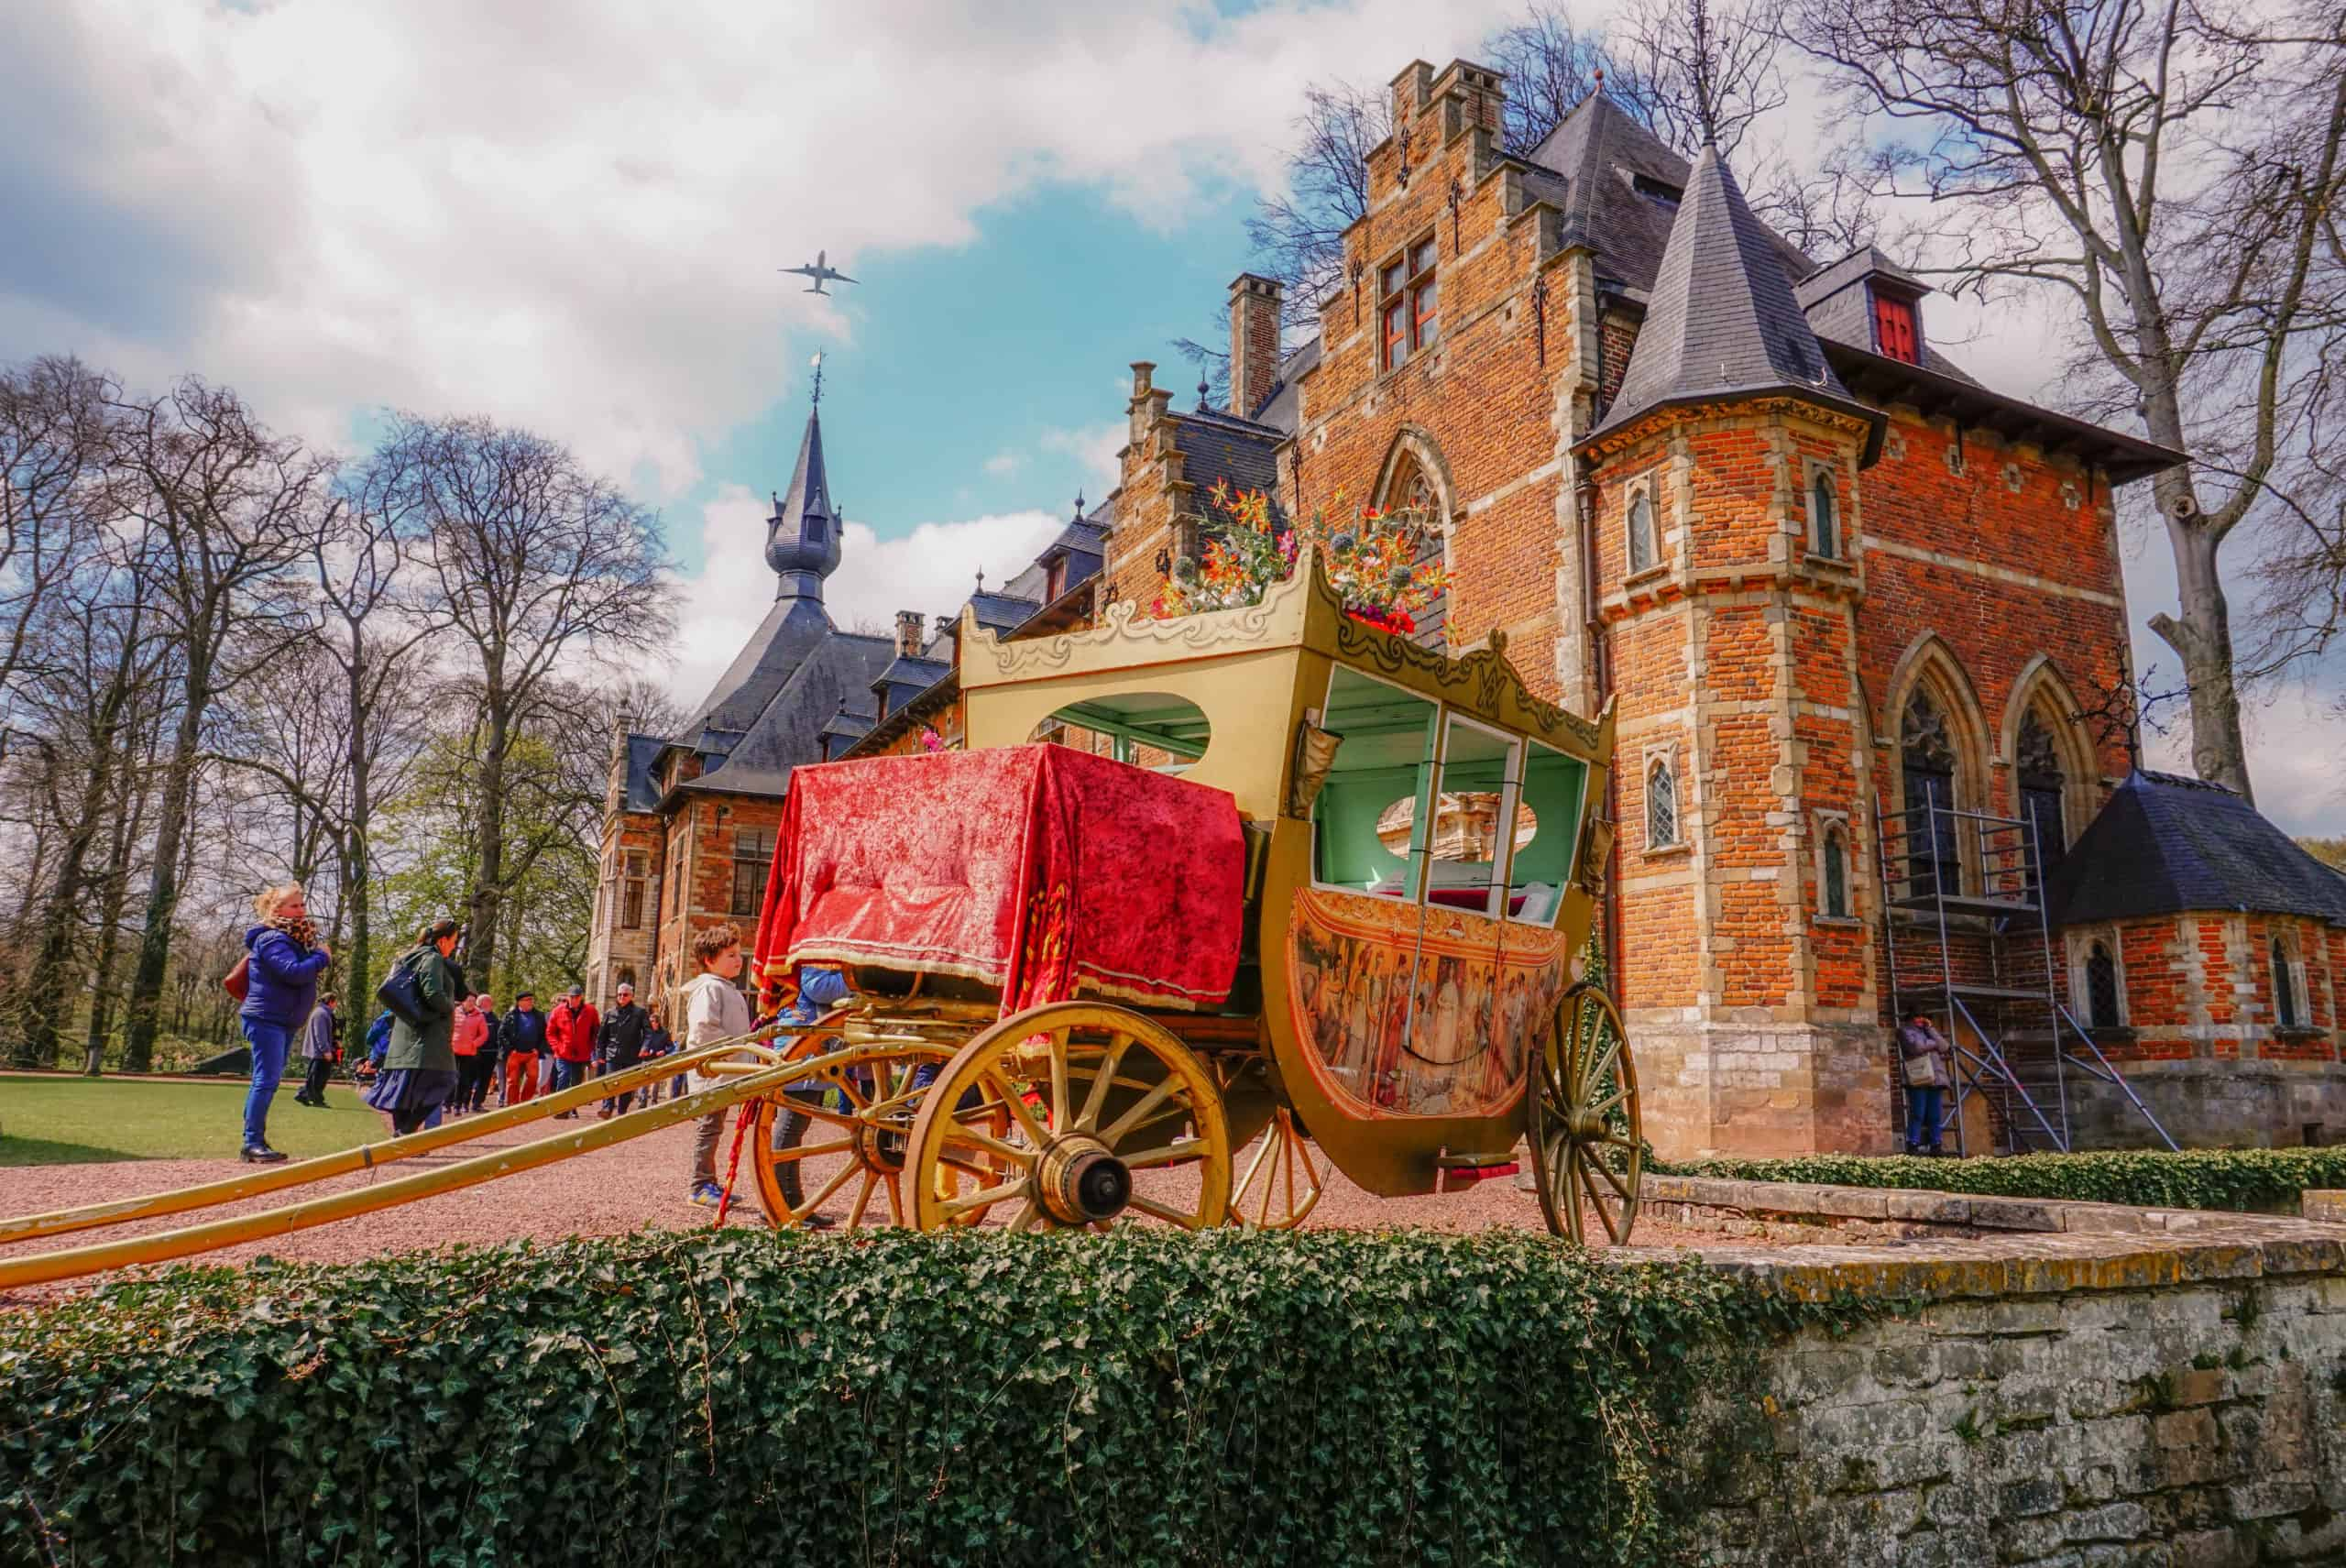 Groot Bijgaarden Castle day trip from Brussels. See tulips in Belgium and learn everything you must know about the Brussels tulip festival. Including the Parade of Venetian Costumes in Belgium #tulips #brussels #belgium